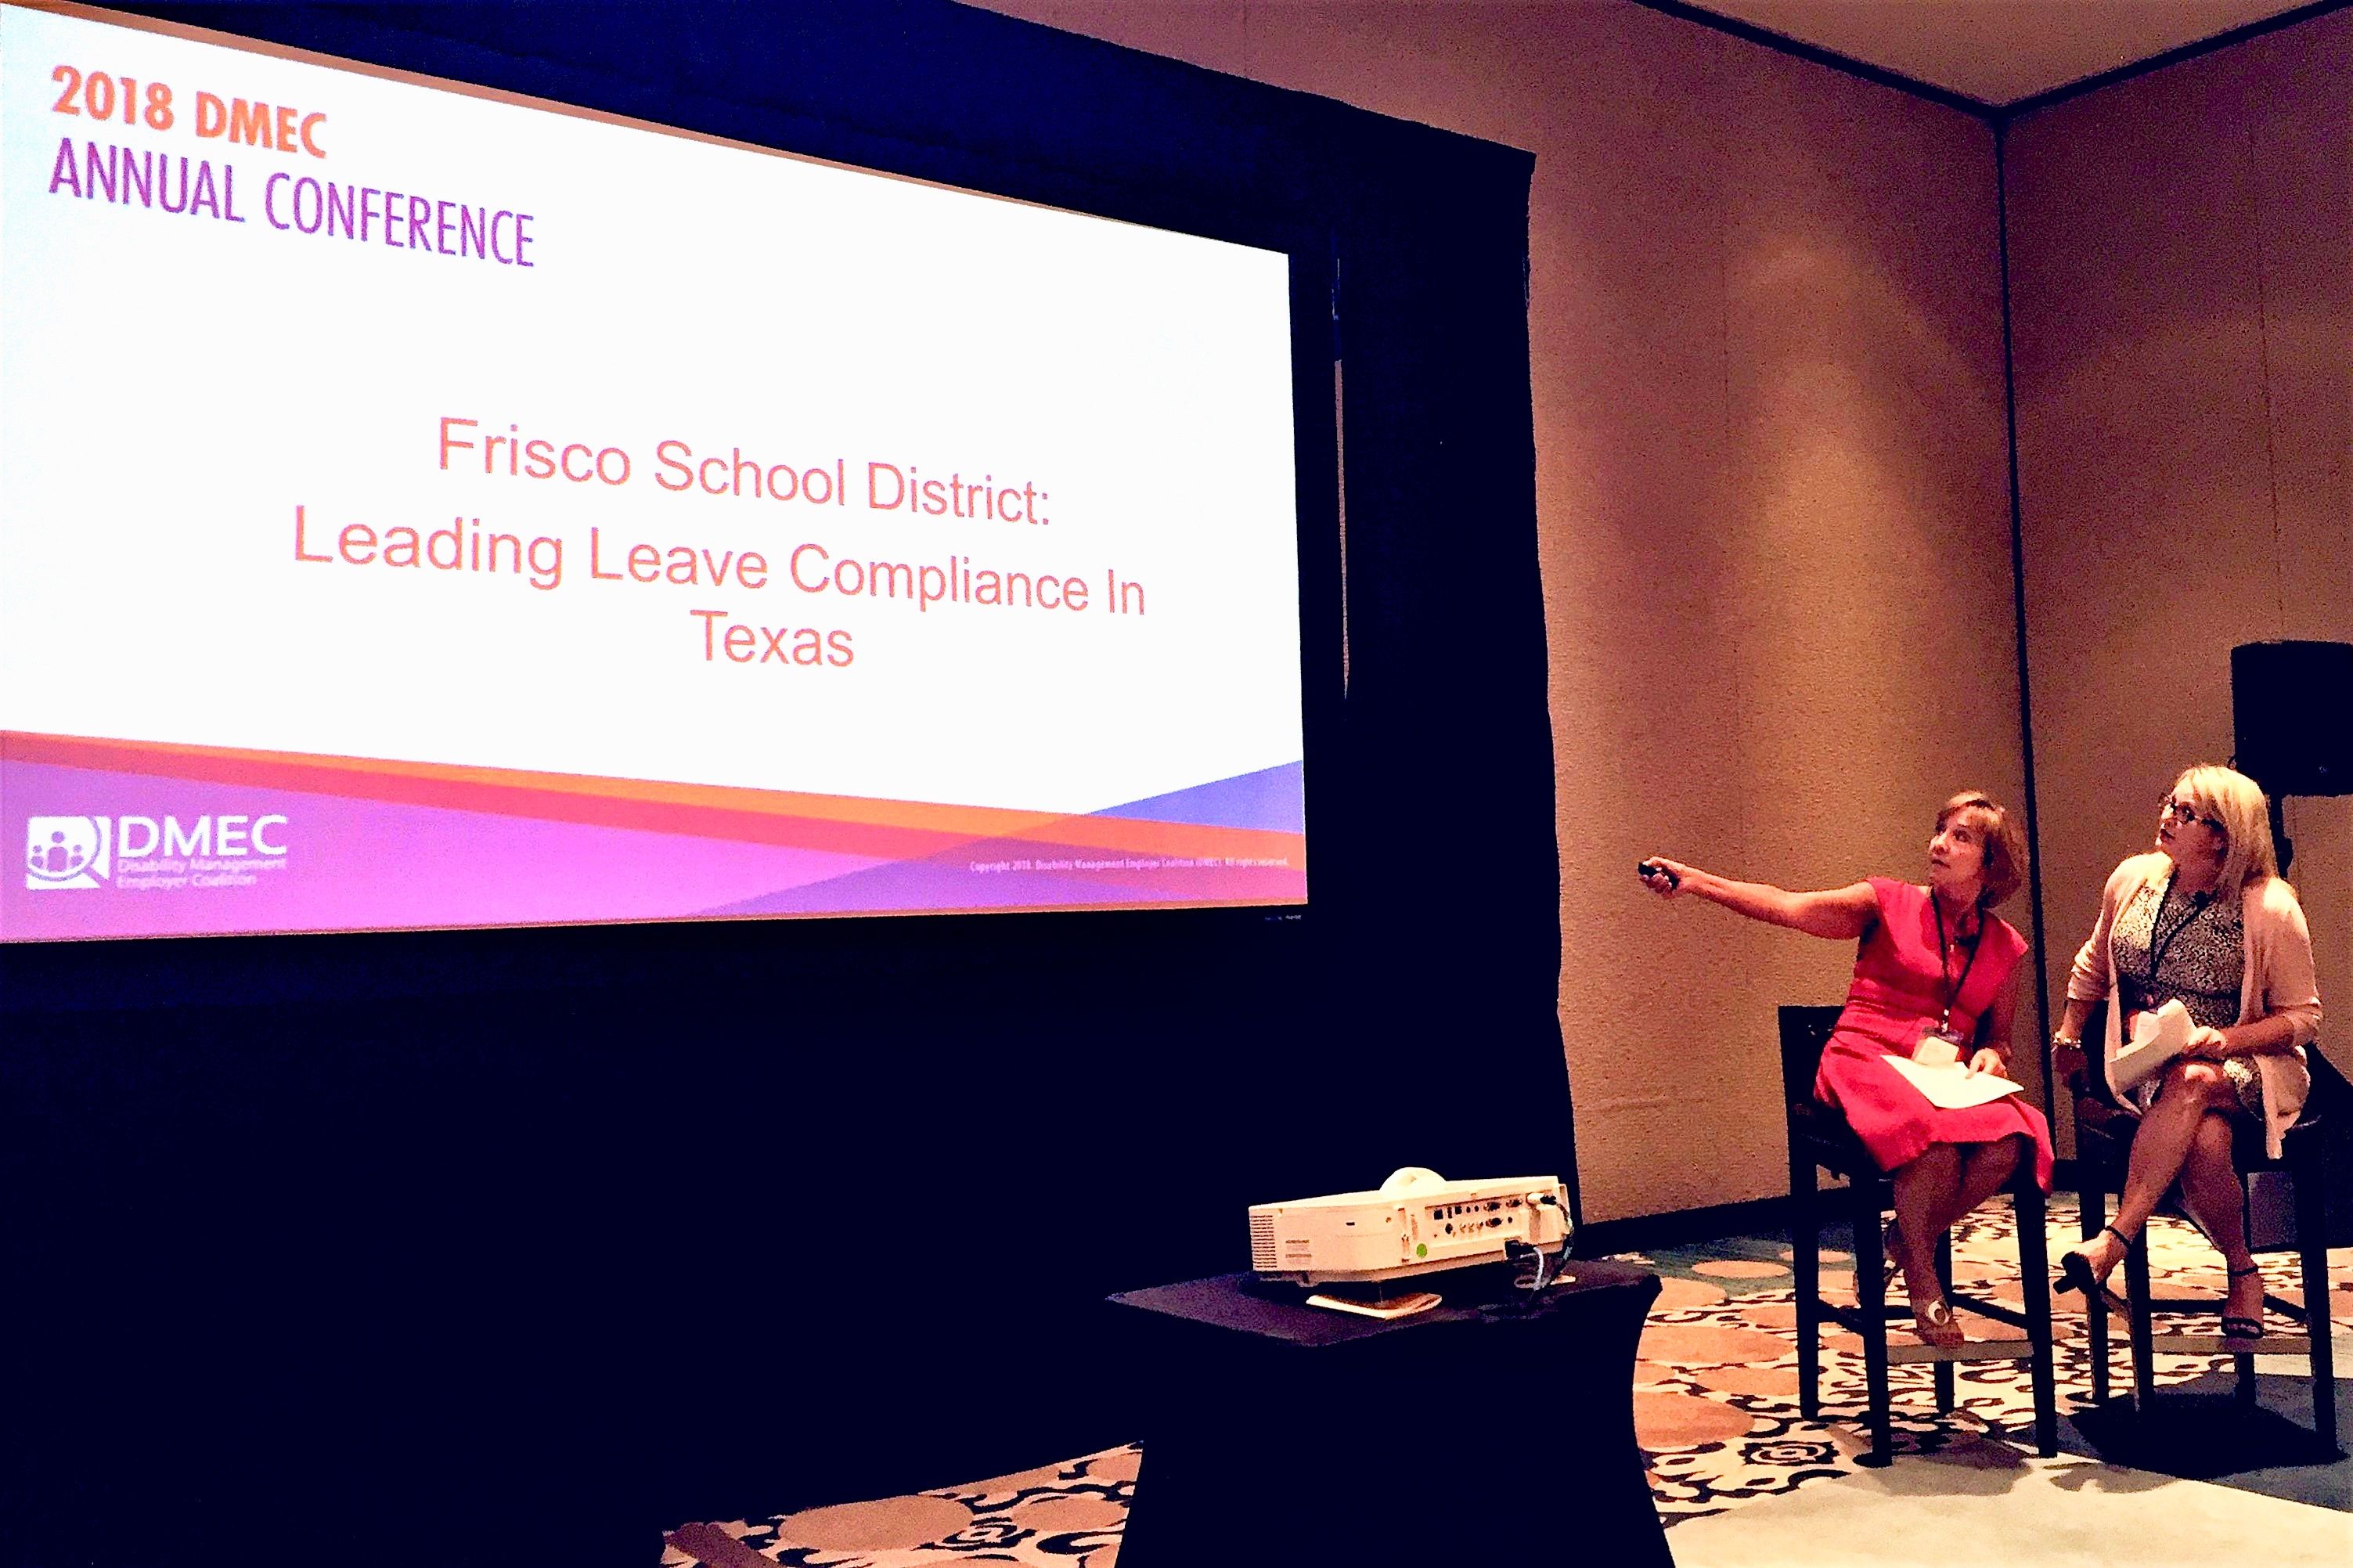 Brenna Rose and Jessica Gilbert present the session, Frisco School District: Leading Leave Compliance at DMEC Annual